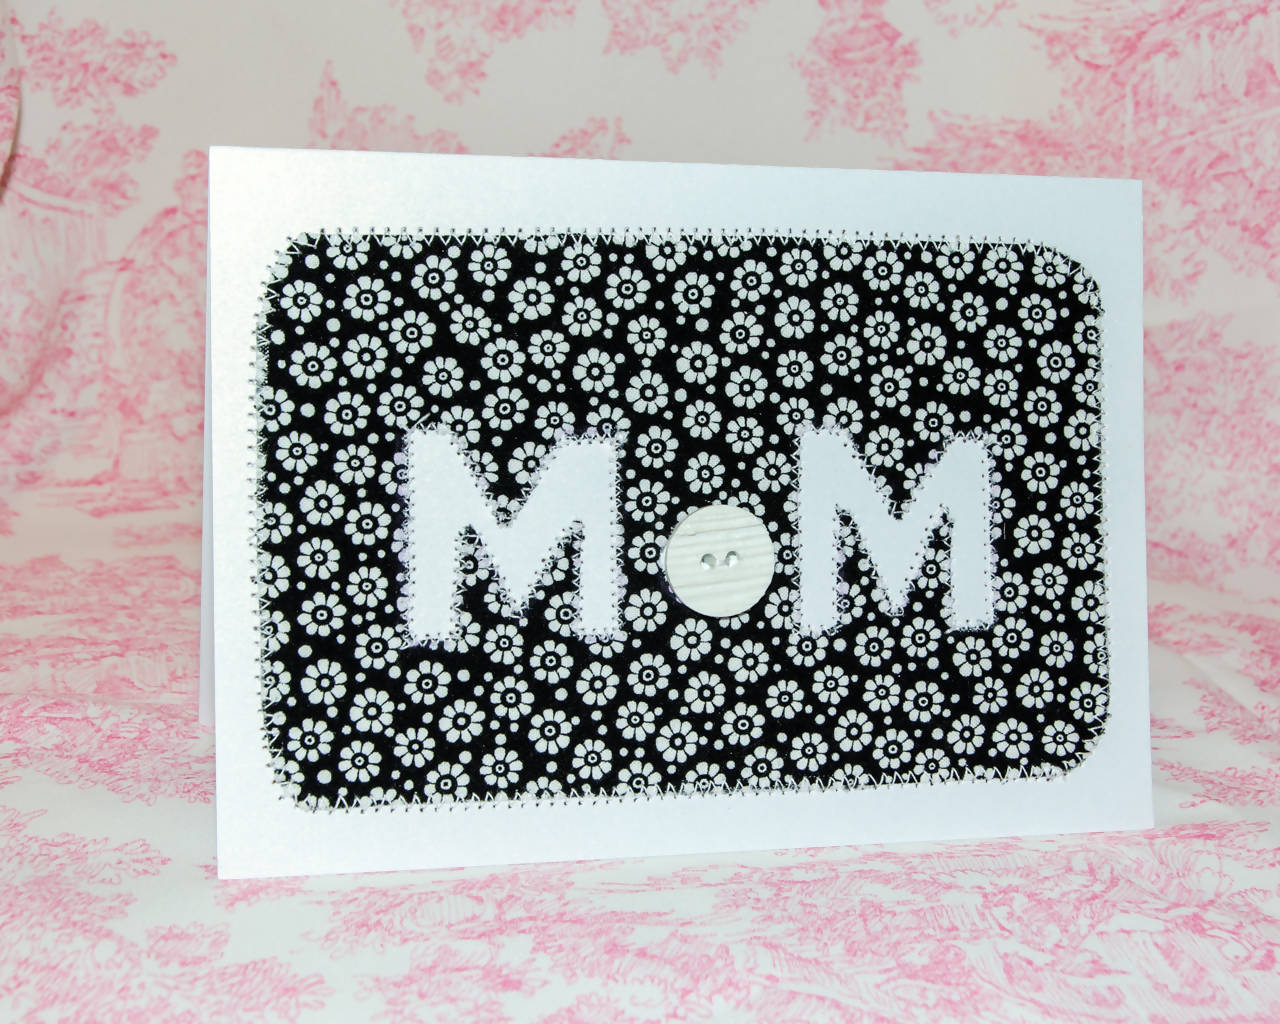 Mother's Day Greeting Card - Handmade - White flowers on black